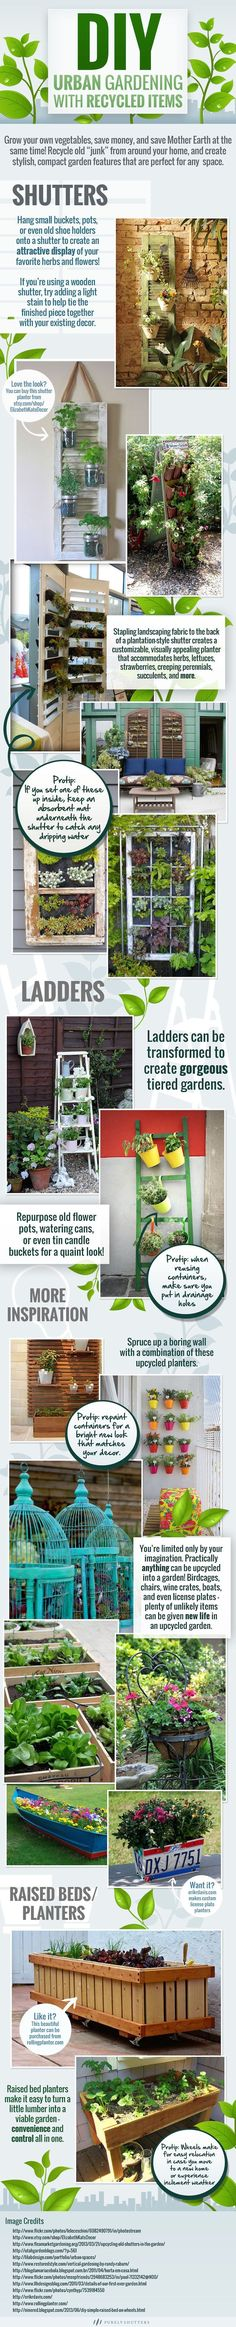 DIY Gardening Ideas with Recycled Items – Infographic